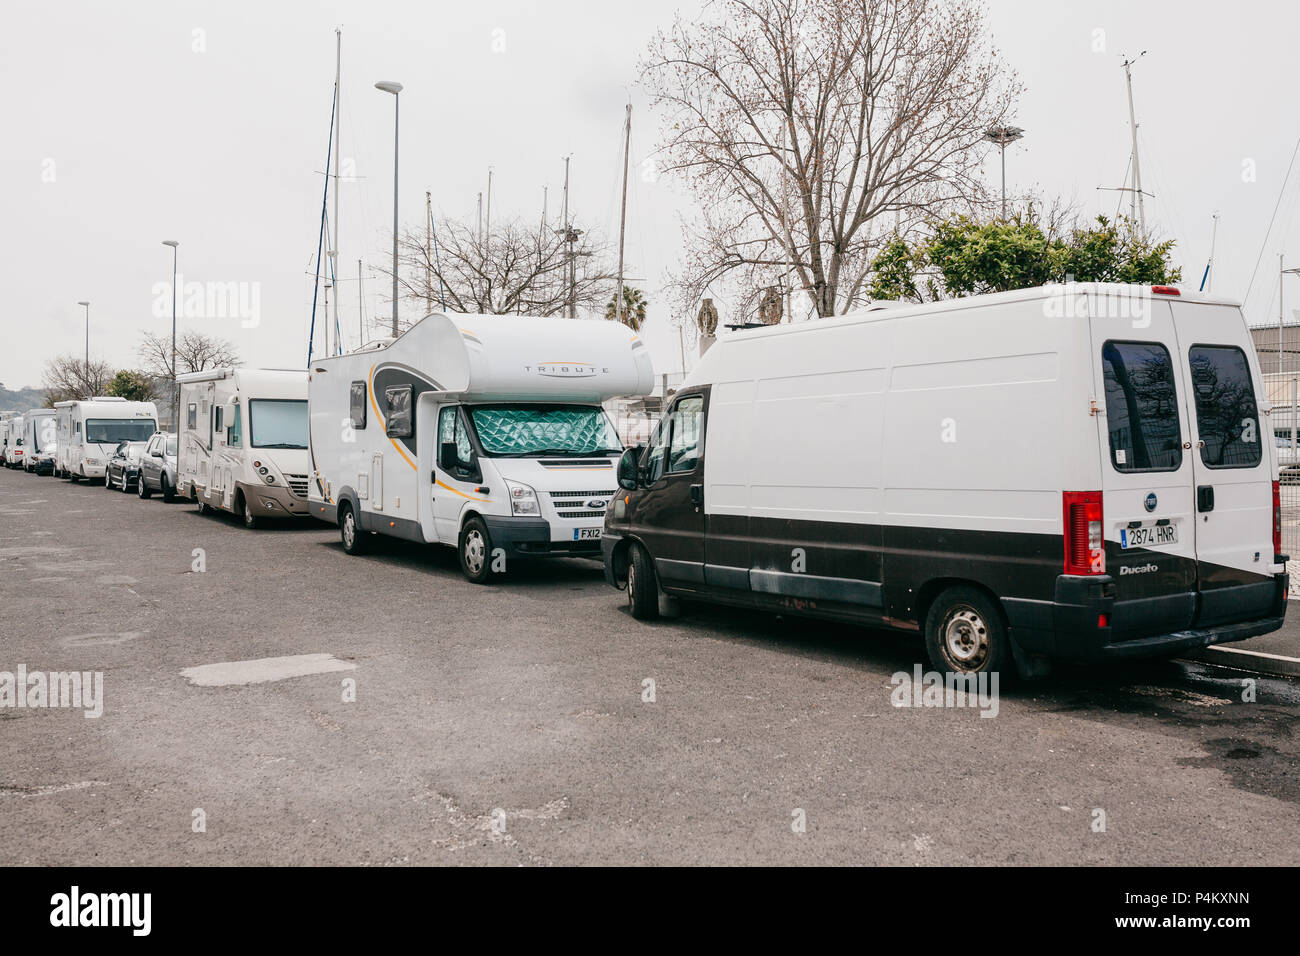 Lisbon, June 18, 2018: Parking trailers near the waterfront in the Belem area. Traveling on a house on wheels - Stock Image